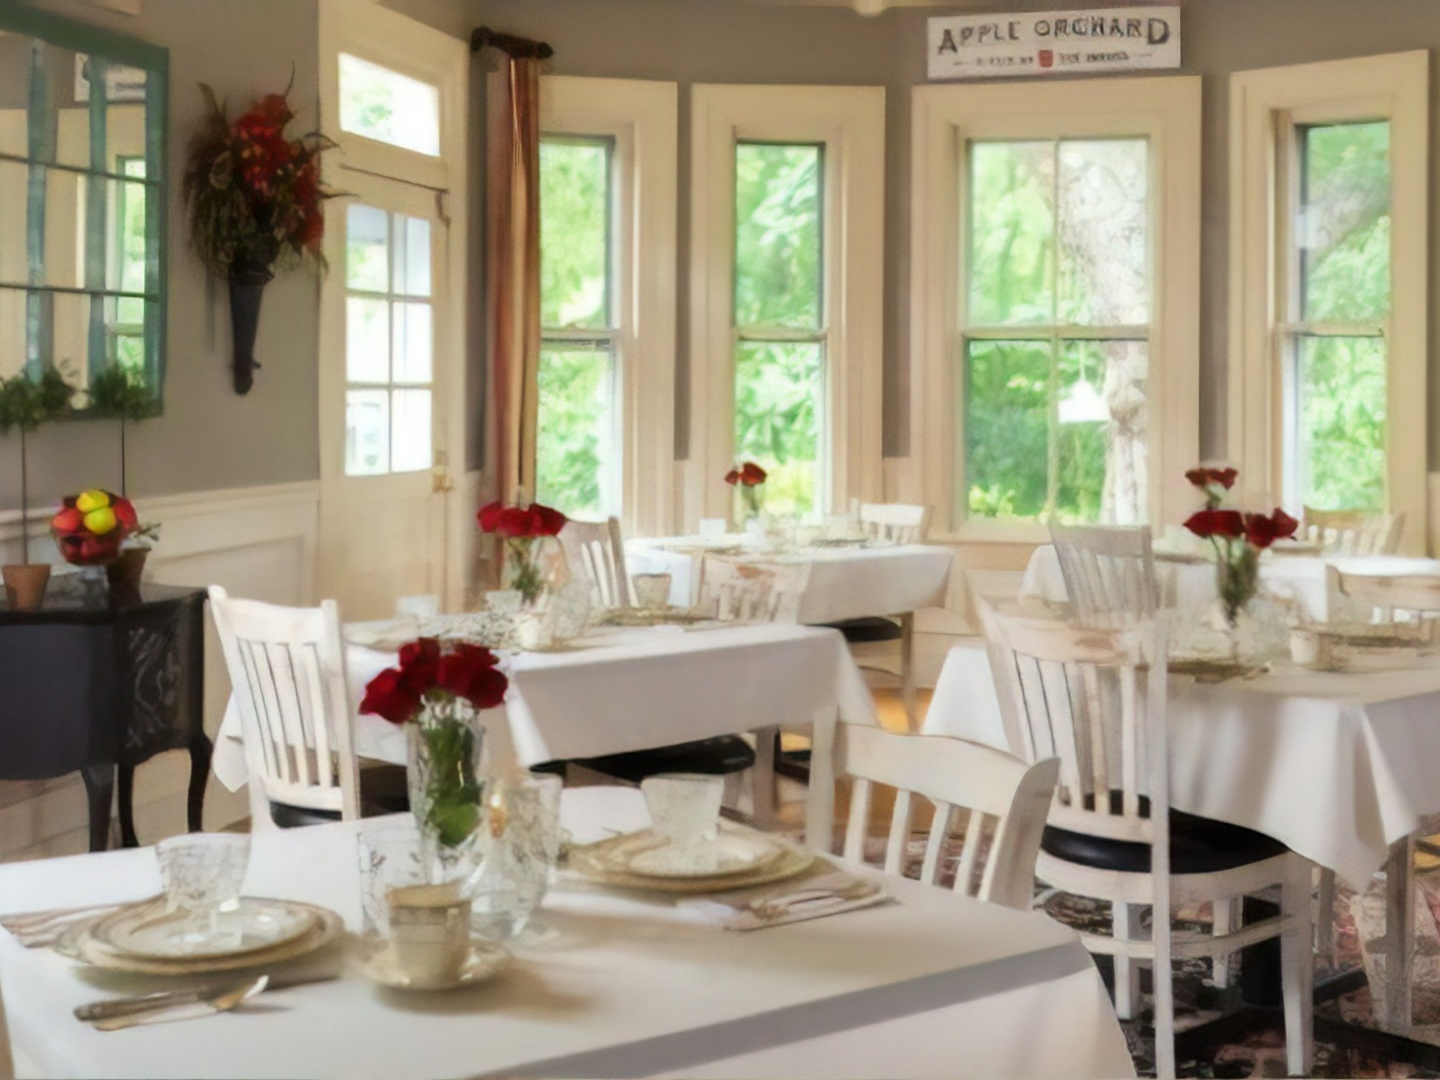 A dining room table in front of a window at Orchard House Bed & Breakfast.